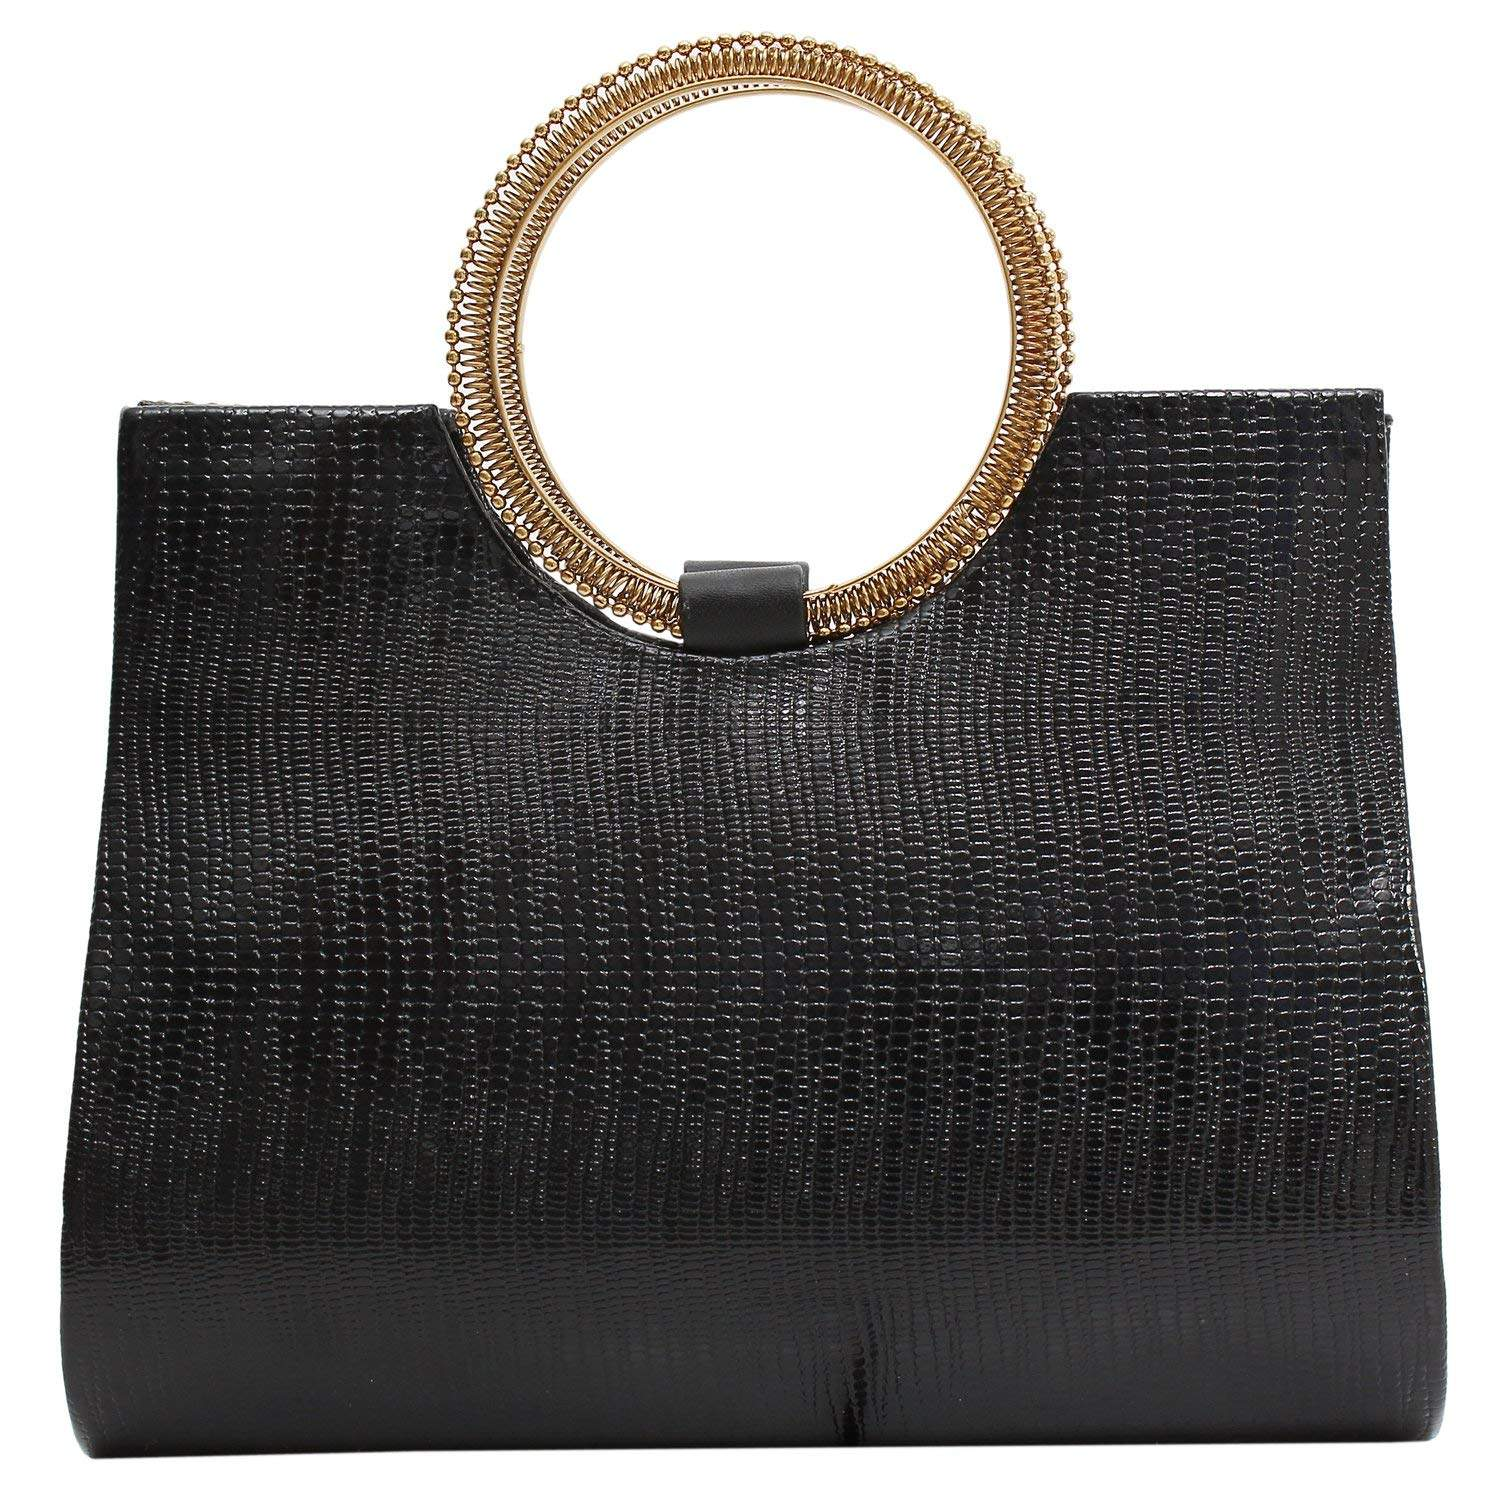 Ethnic Ladies Sling Clutches Side Bag  (Black) - Bagaholics Gift